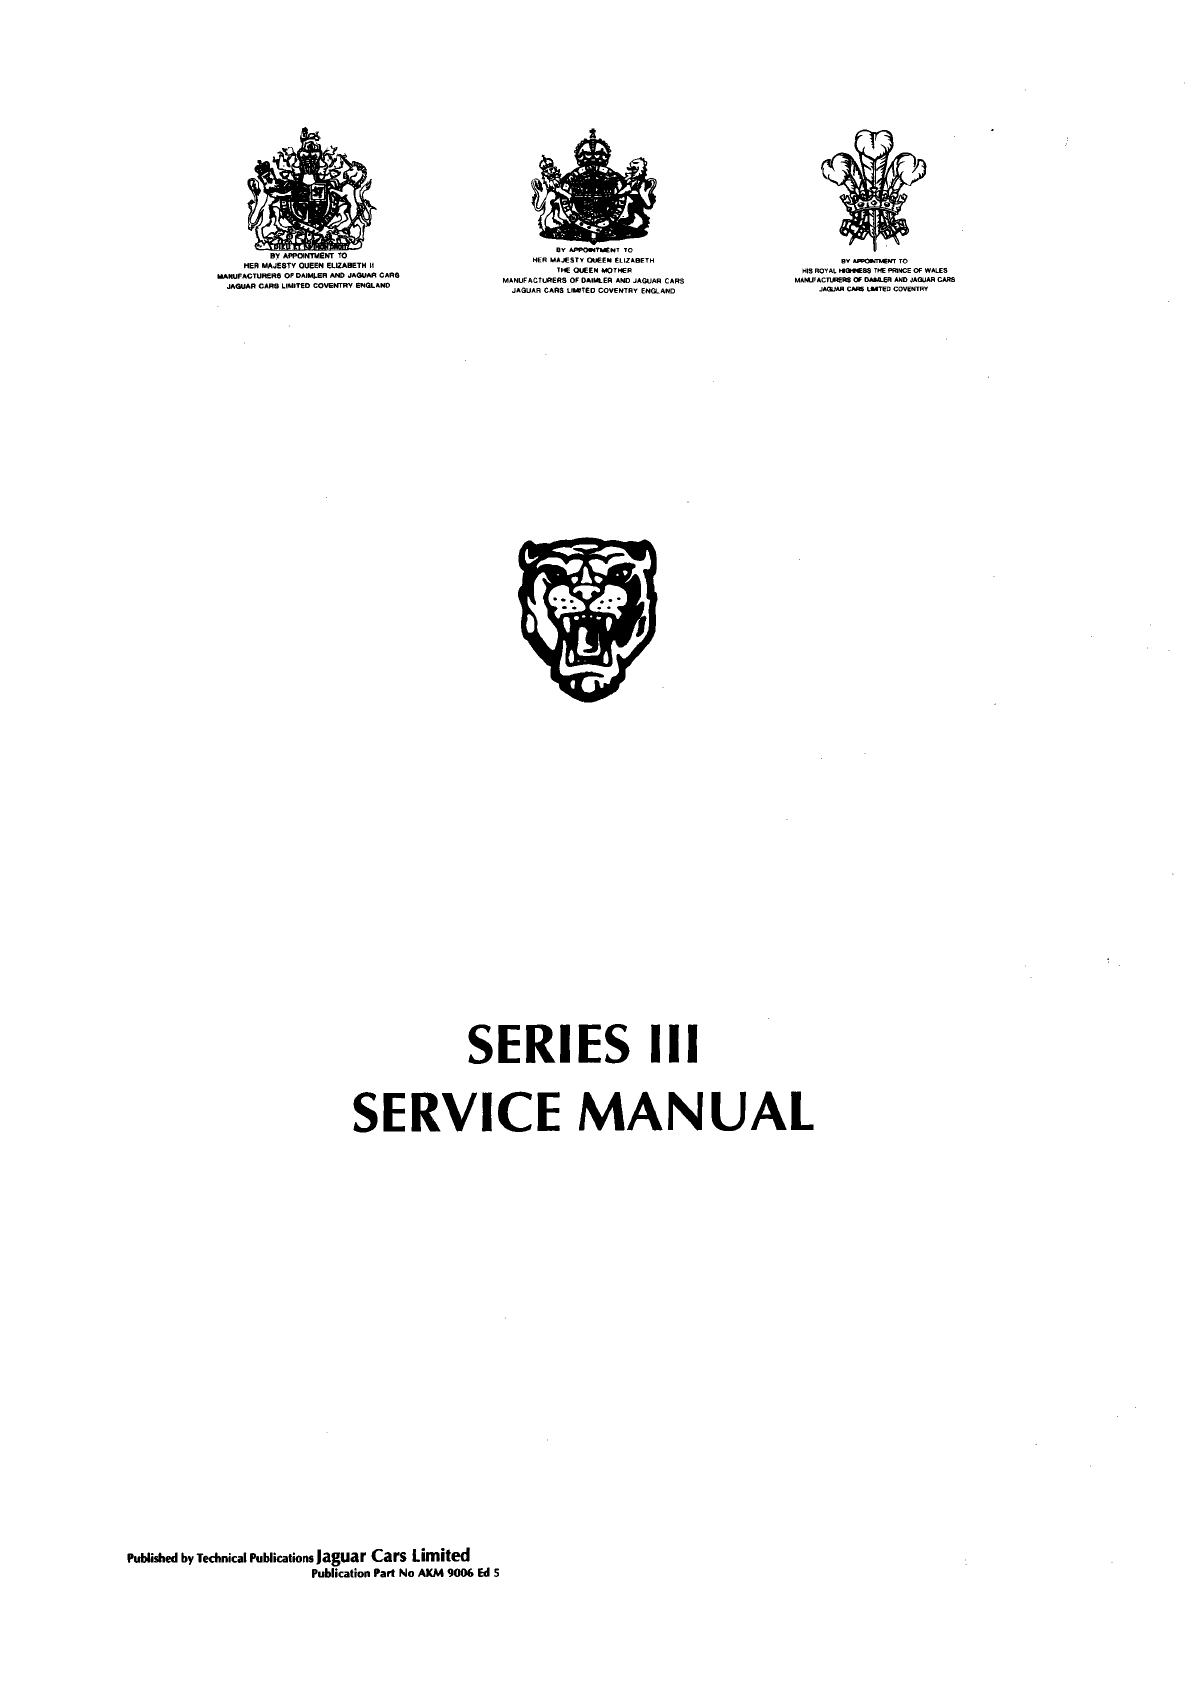 Jaguar XJ12 Workshop Manual PDF